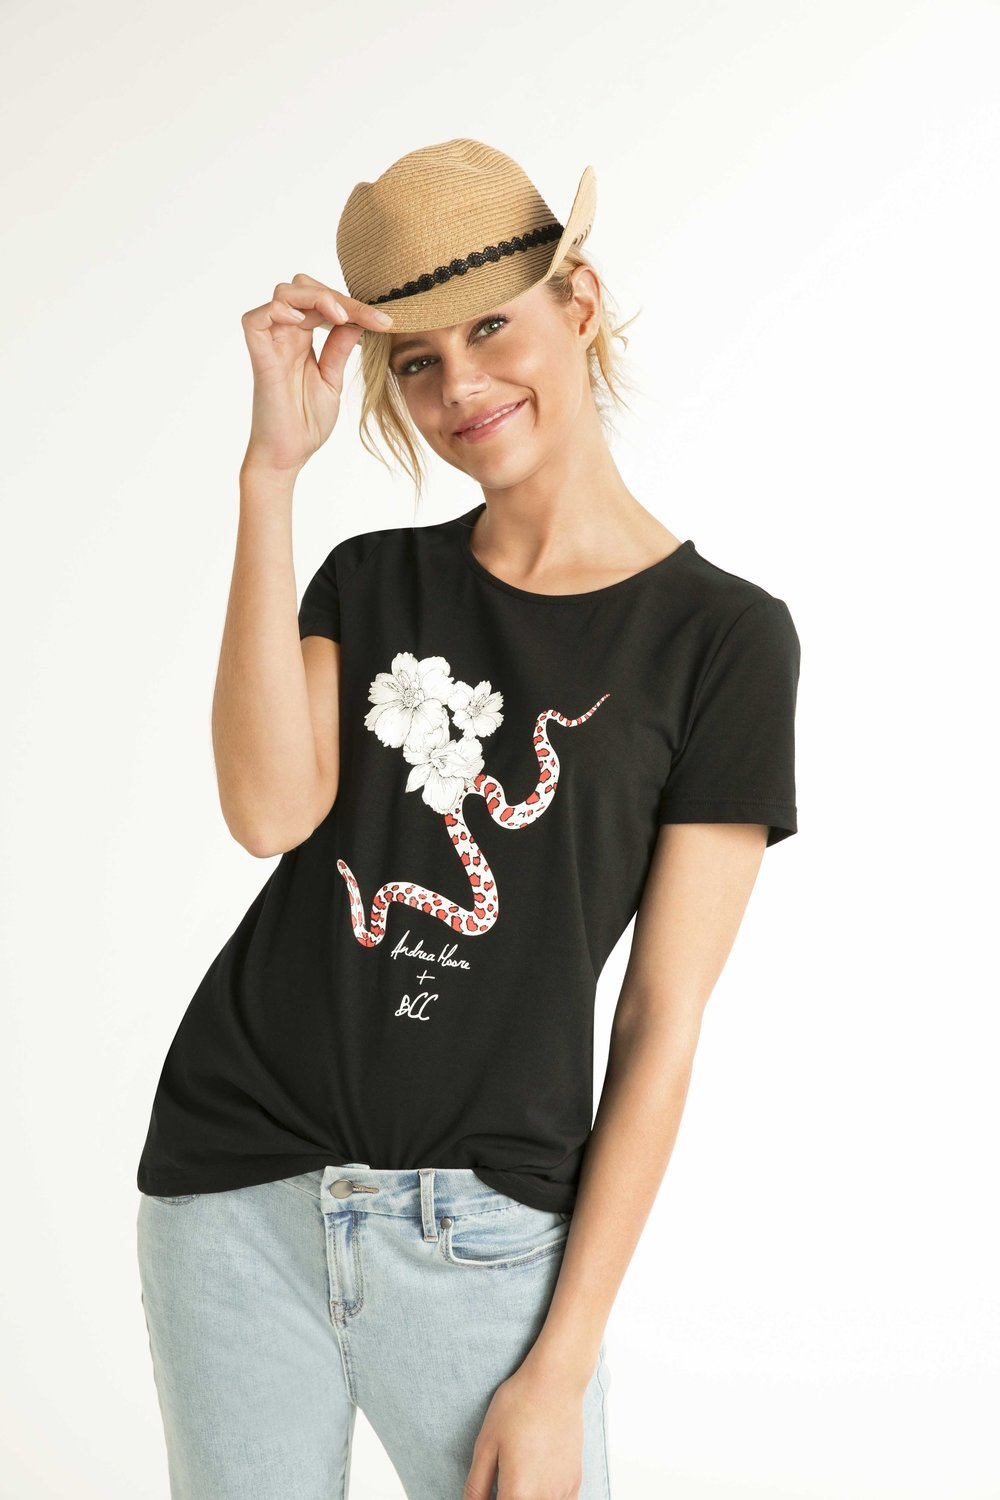 187840_Andrea-Moore_TShirt_Sizes XS to 3XL_Price $29_99.jpg